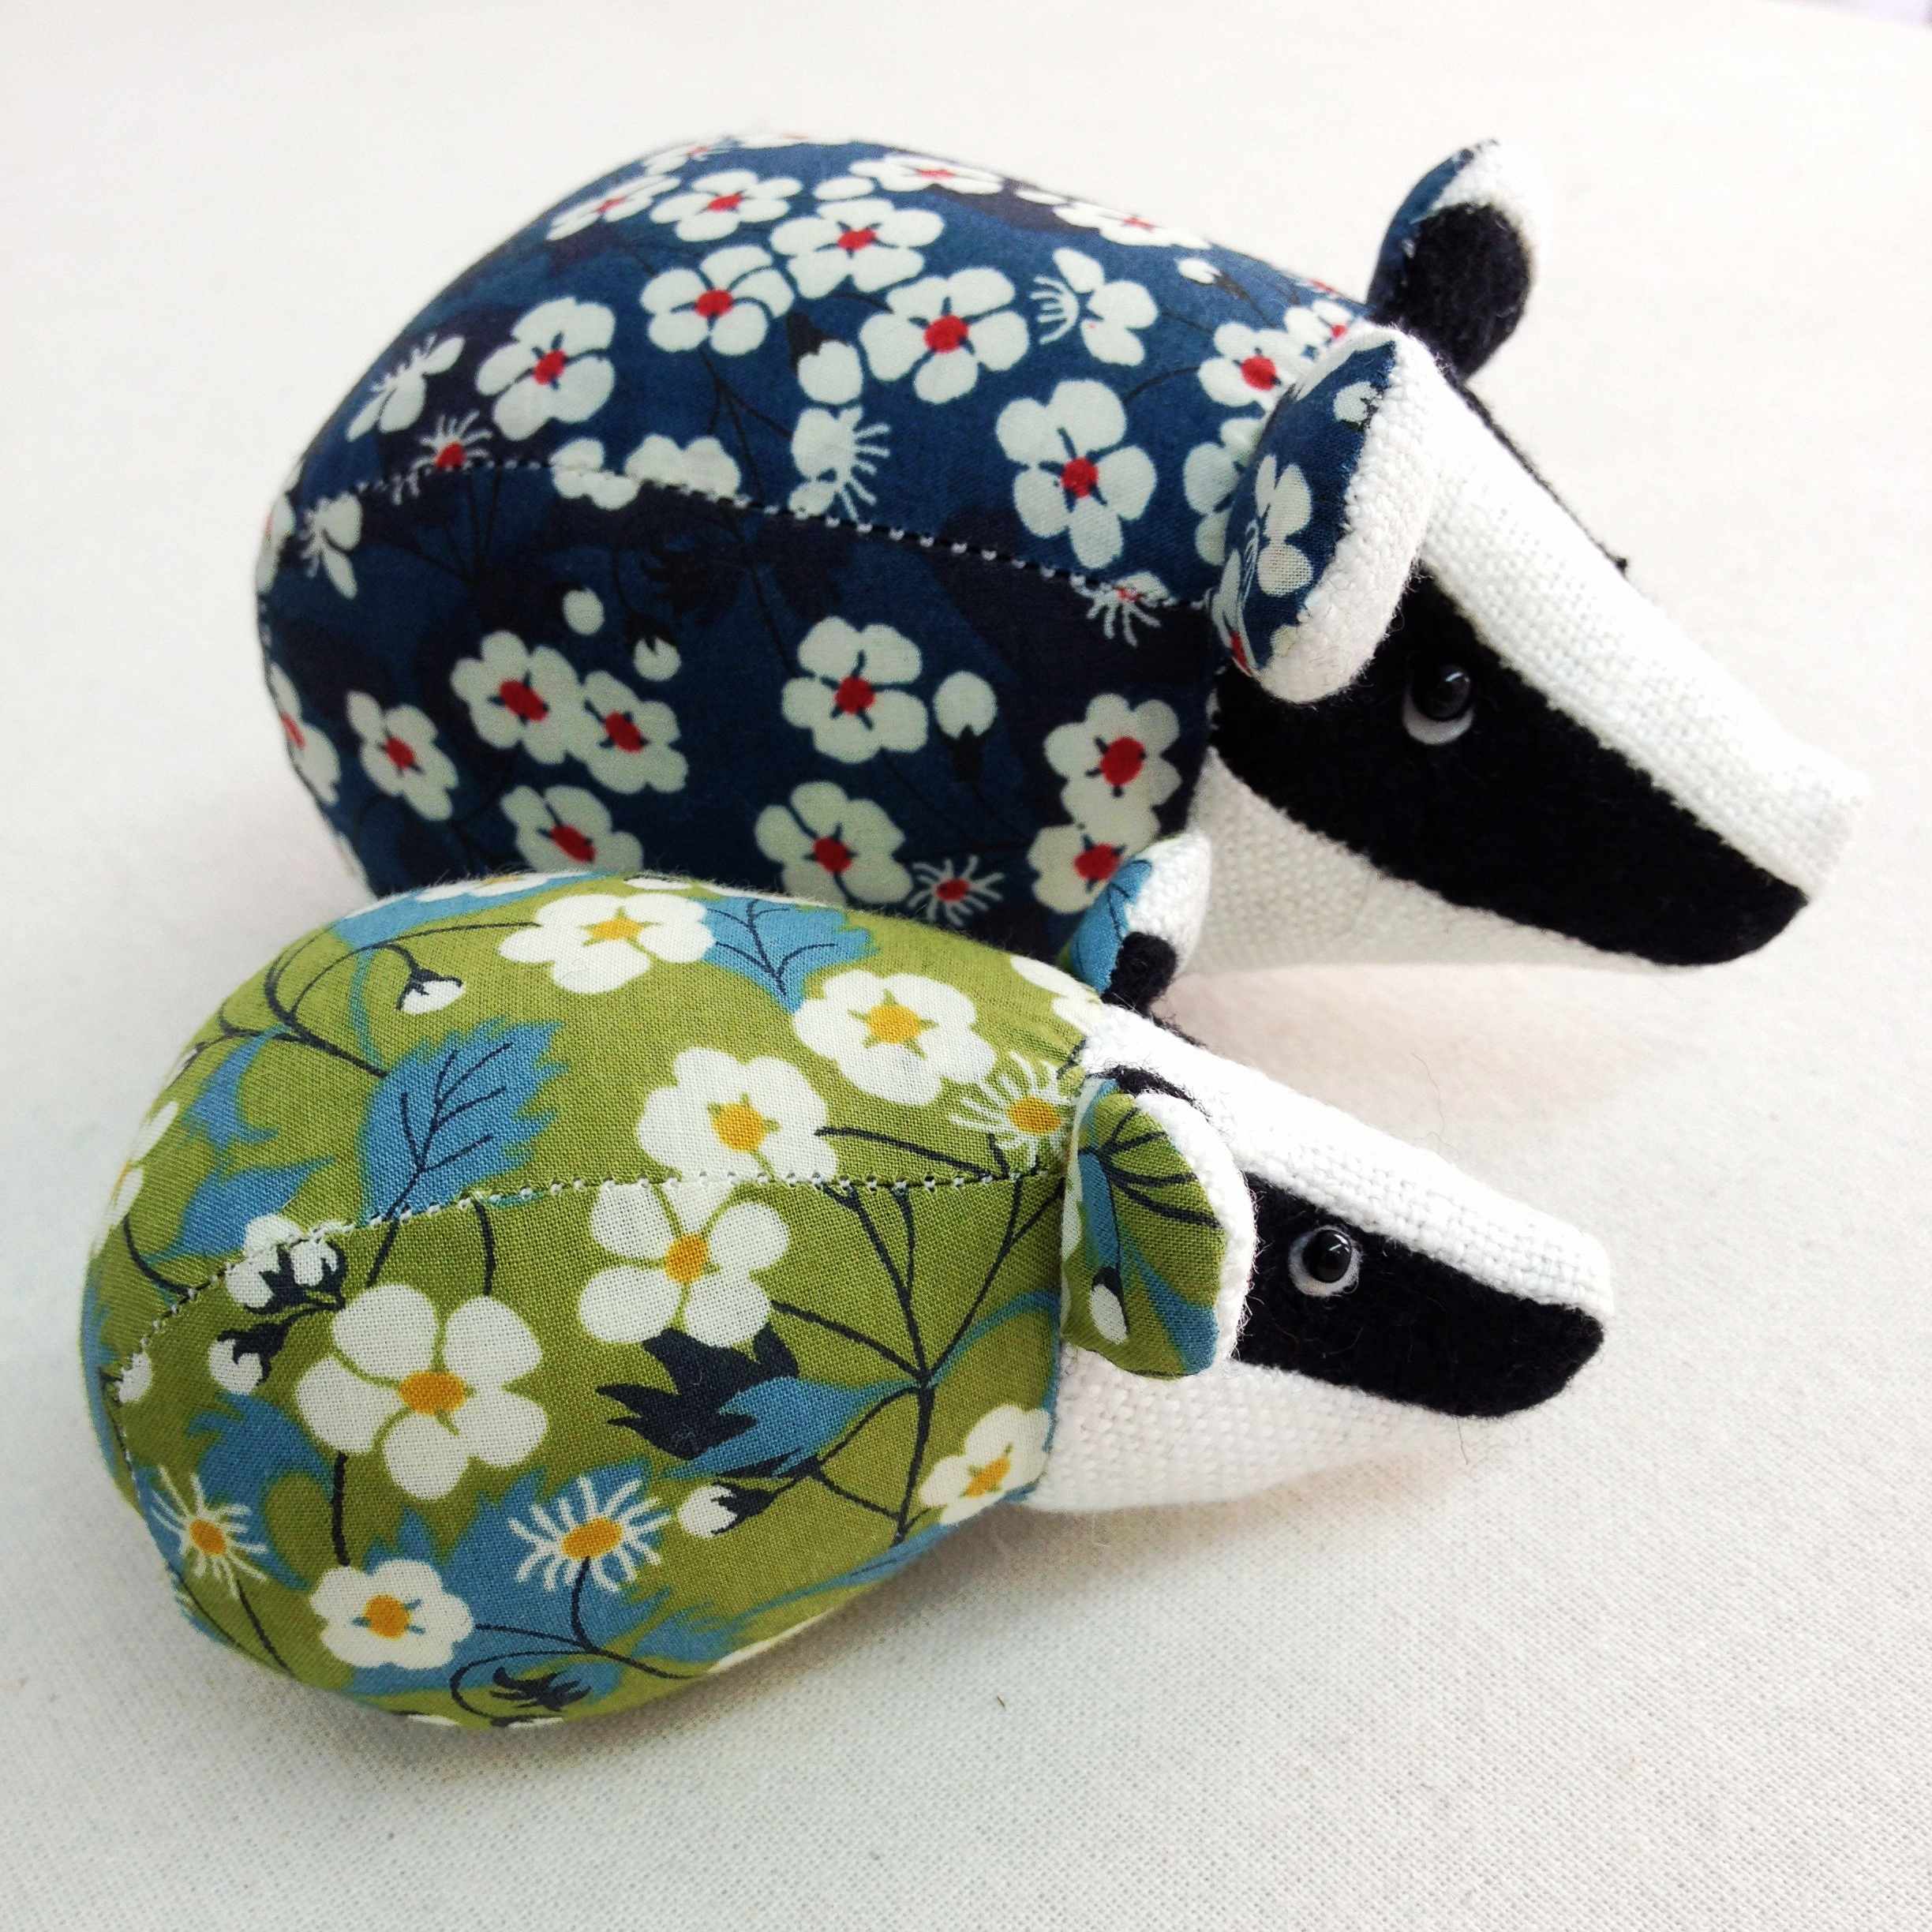 Handmade paperweight badgers in Liberty print fabrics.